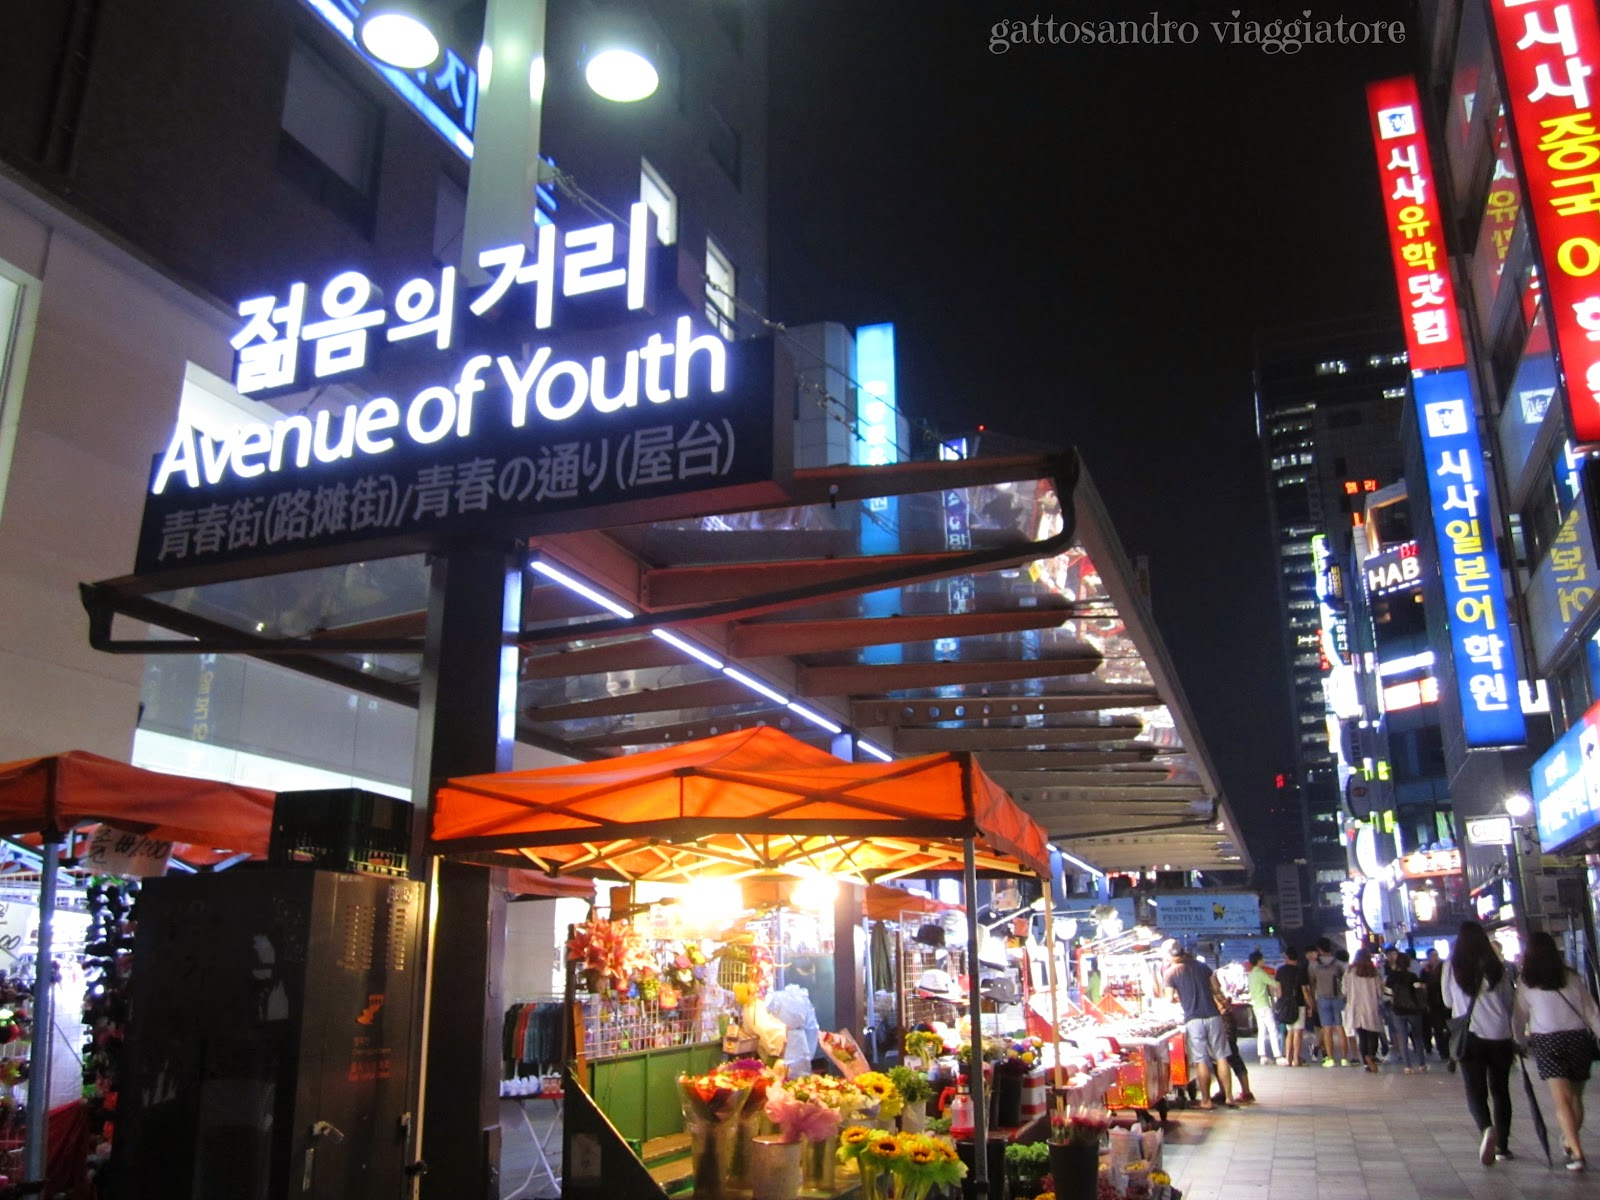 Avenue of Youth - Seoul